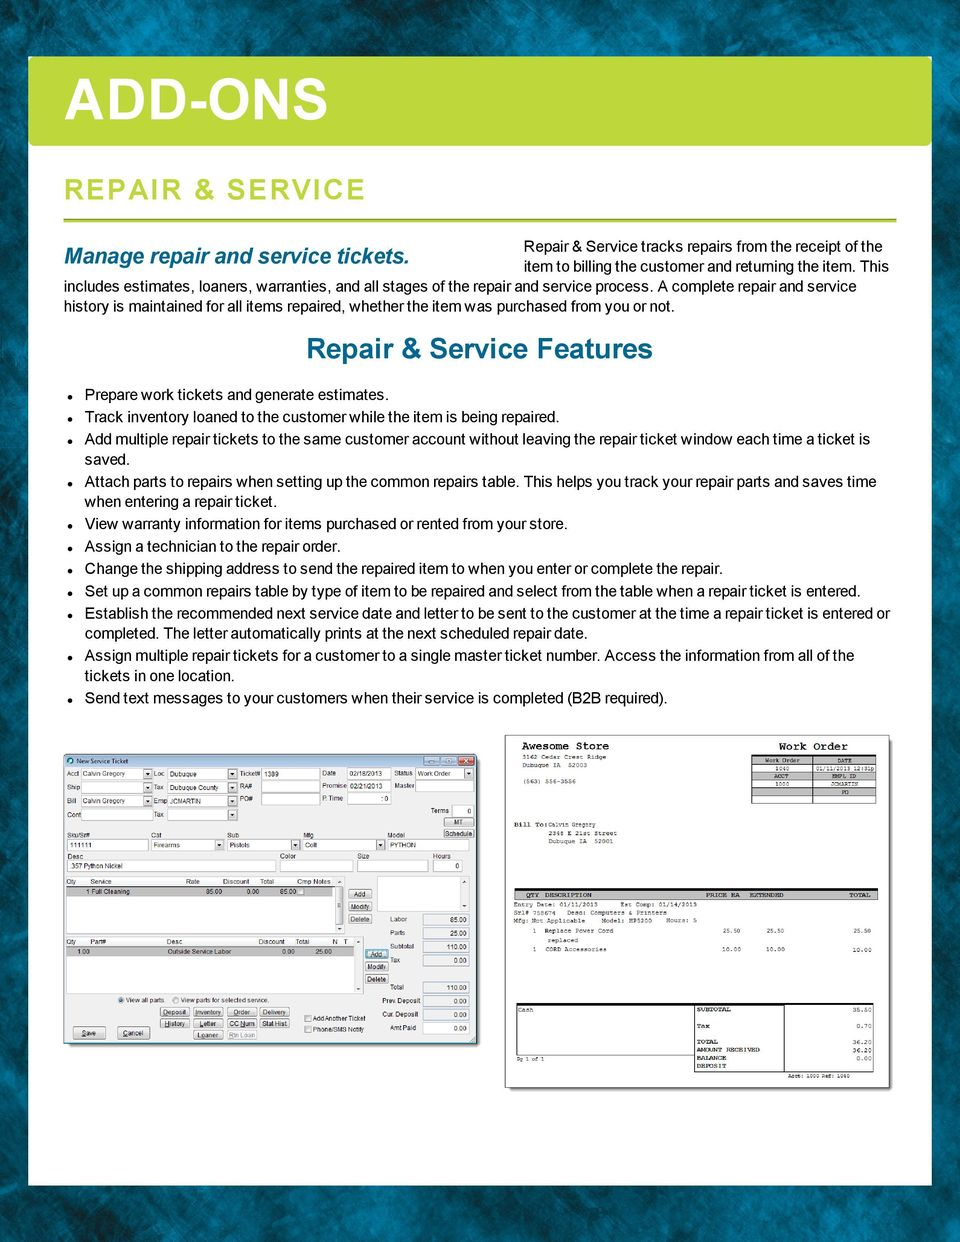 A compete repair and service history is maintained for a items repaired, whether the item was purchased from you or not. Manage repair and service tickets.